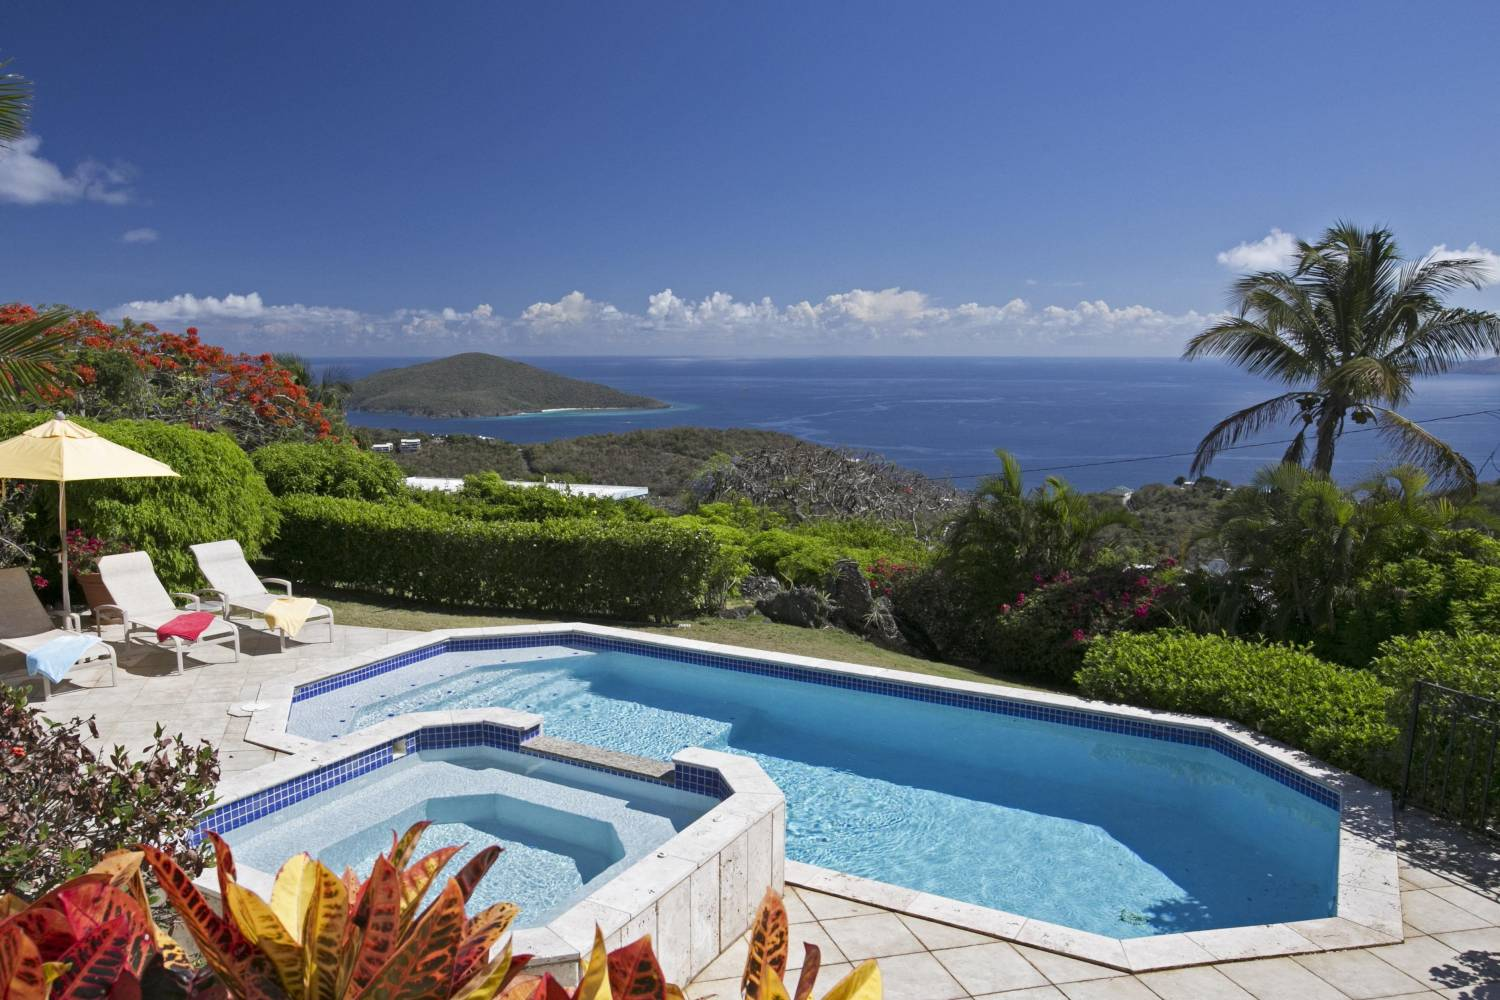 Take a Chef and our Private Chefs are available in Peterborg, St. Thomas now, header